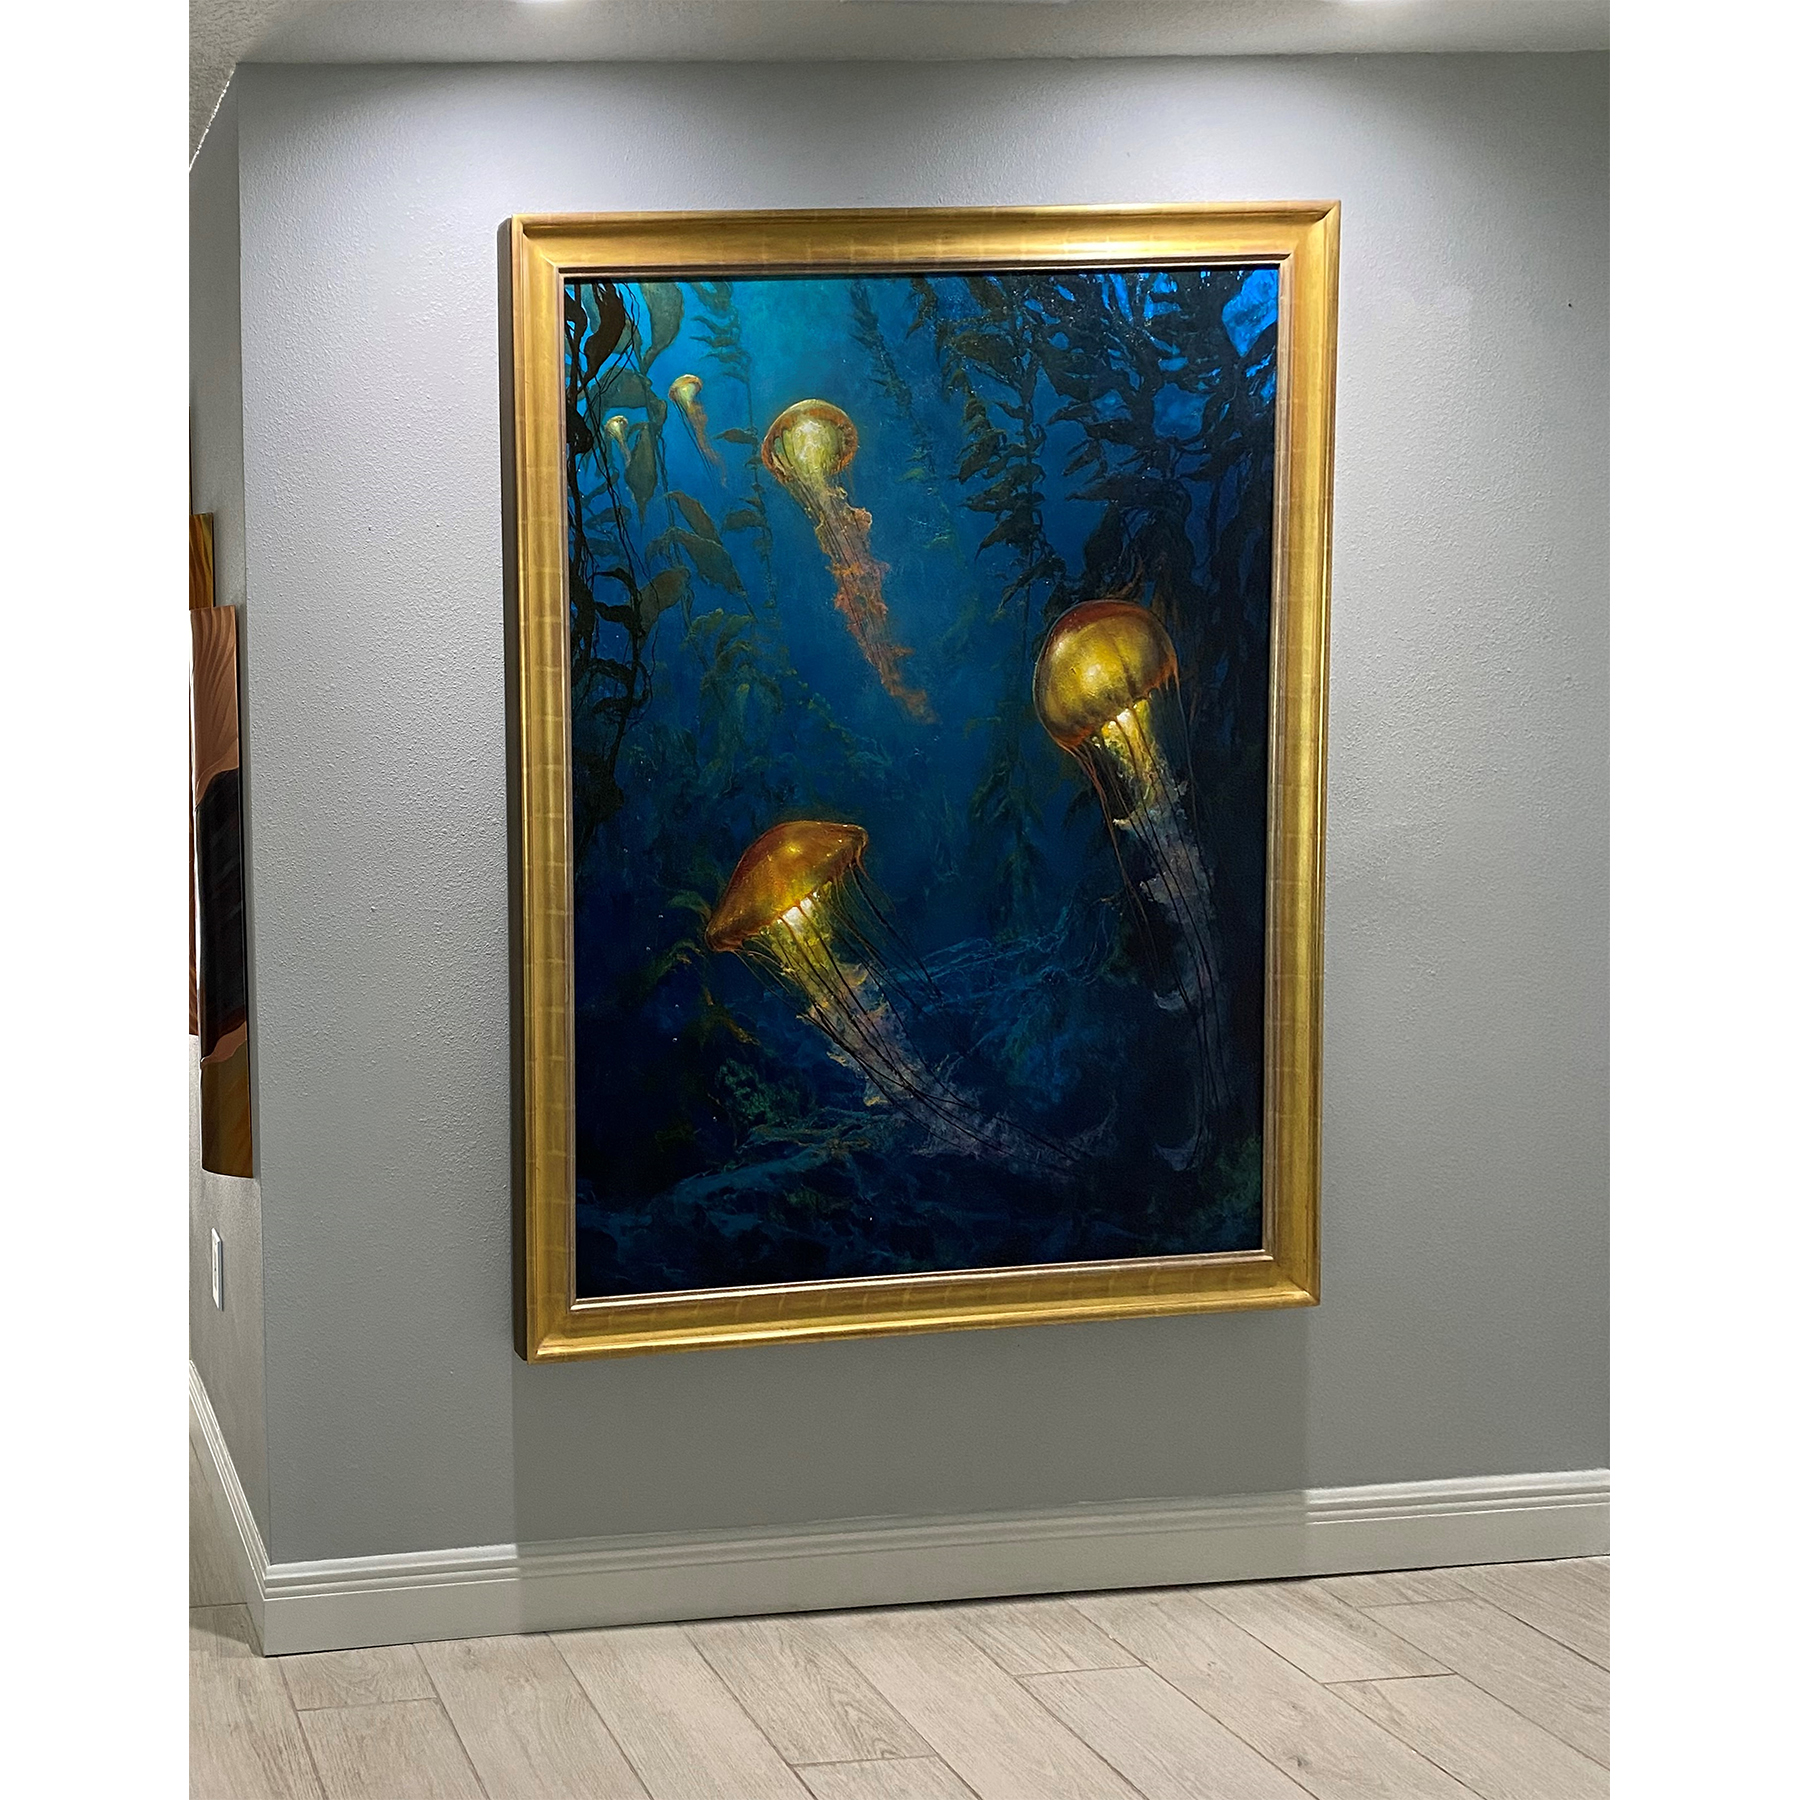 Gold-framed painting of jellyfish installed in a home